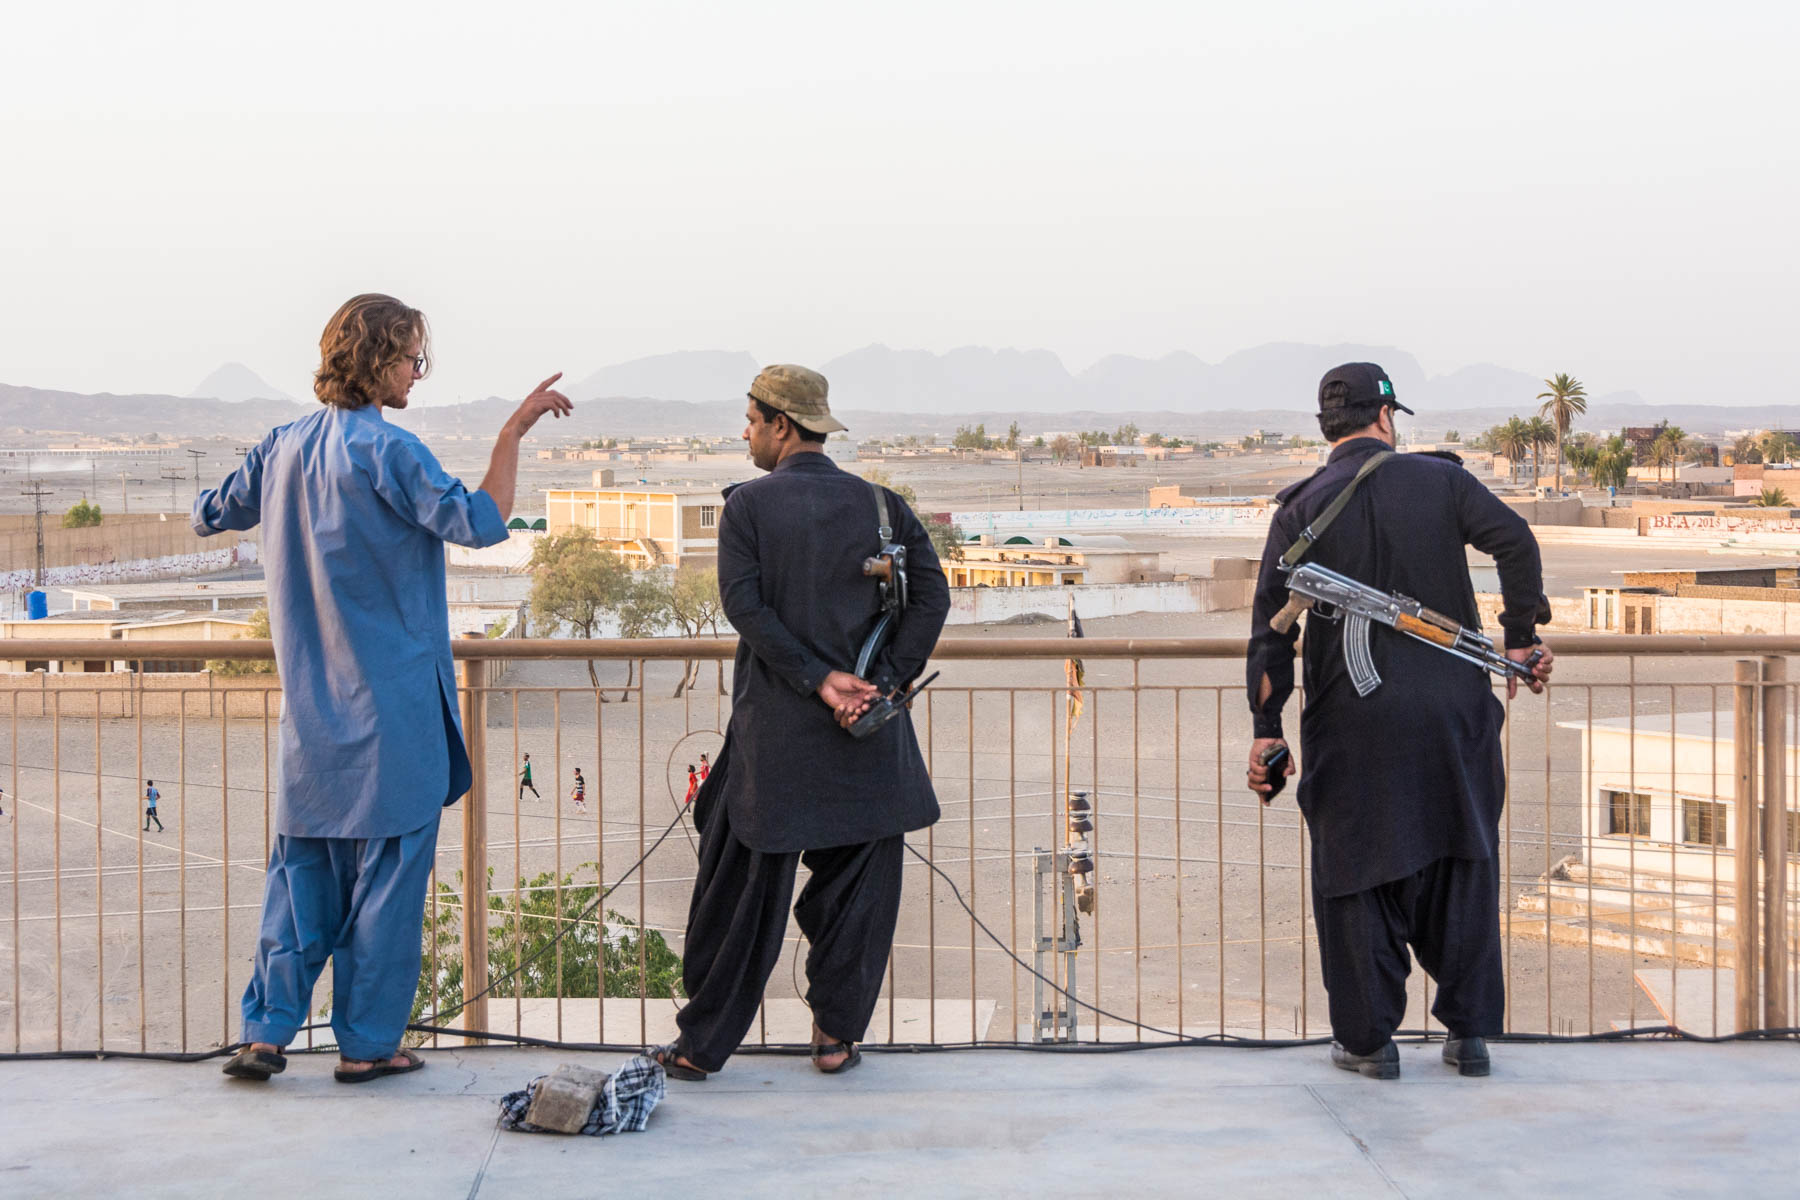 Surveying Dalbadin, Pakistan with the Levies from the roof.